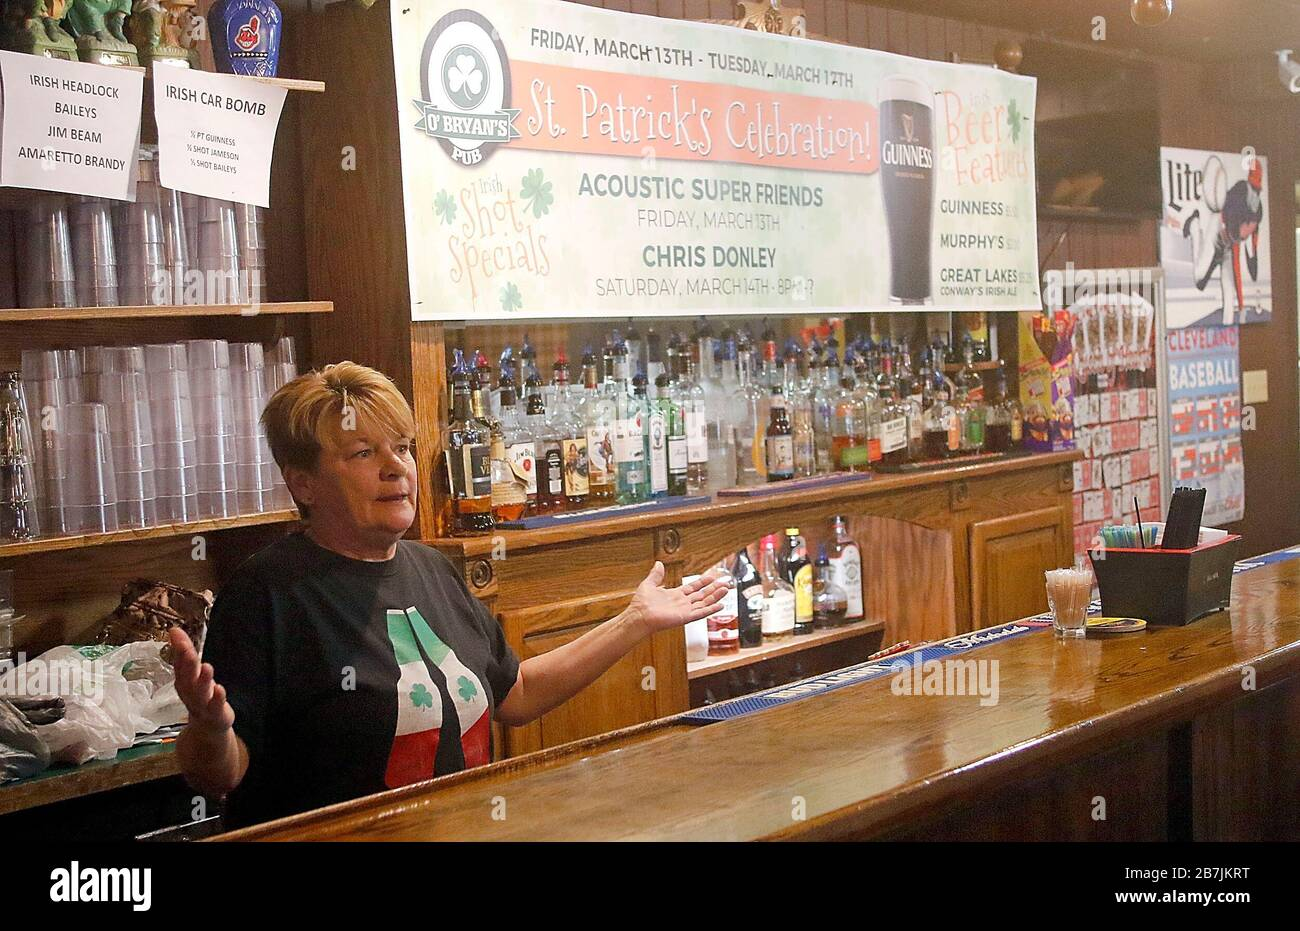 Ashland, USA. 16th Mar, 2020. Mar 16, 2020; Ashland, OH, USA; Obryan's Pub bartender/server Vicky McQuate talks with a Times-Gazette reporter about their new carry out operations after the Cornonavirus outbreak has shut down restaurants and bars Monday, March 16, 2020 at the restaurant in Ashland, OH. She also mentioned missing the daily contact with the regulars who patronize the establishment on a regular basis. Mandatory Credit: Tom E. Puskar/Ashland Times-Gazette via USA TODAY NETWORK/Sipa USA Credit: Sipa USA/Alamy Live News Stock Photo